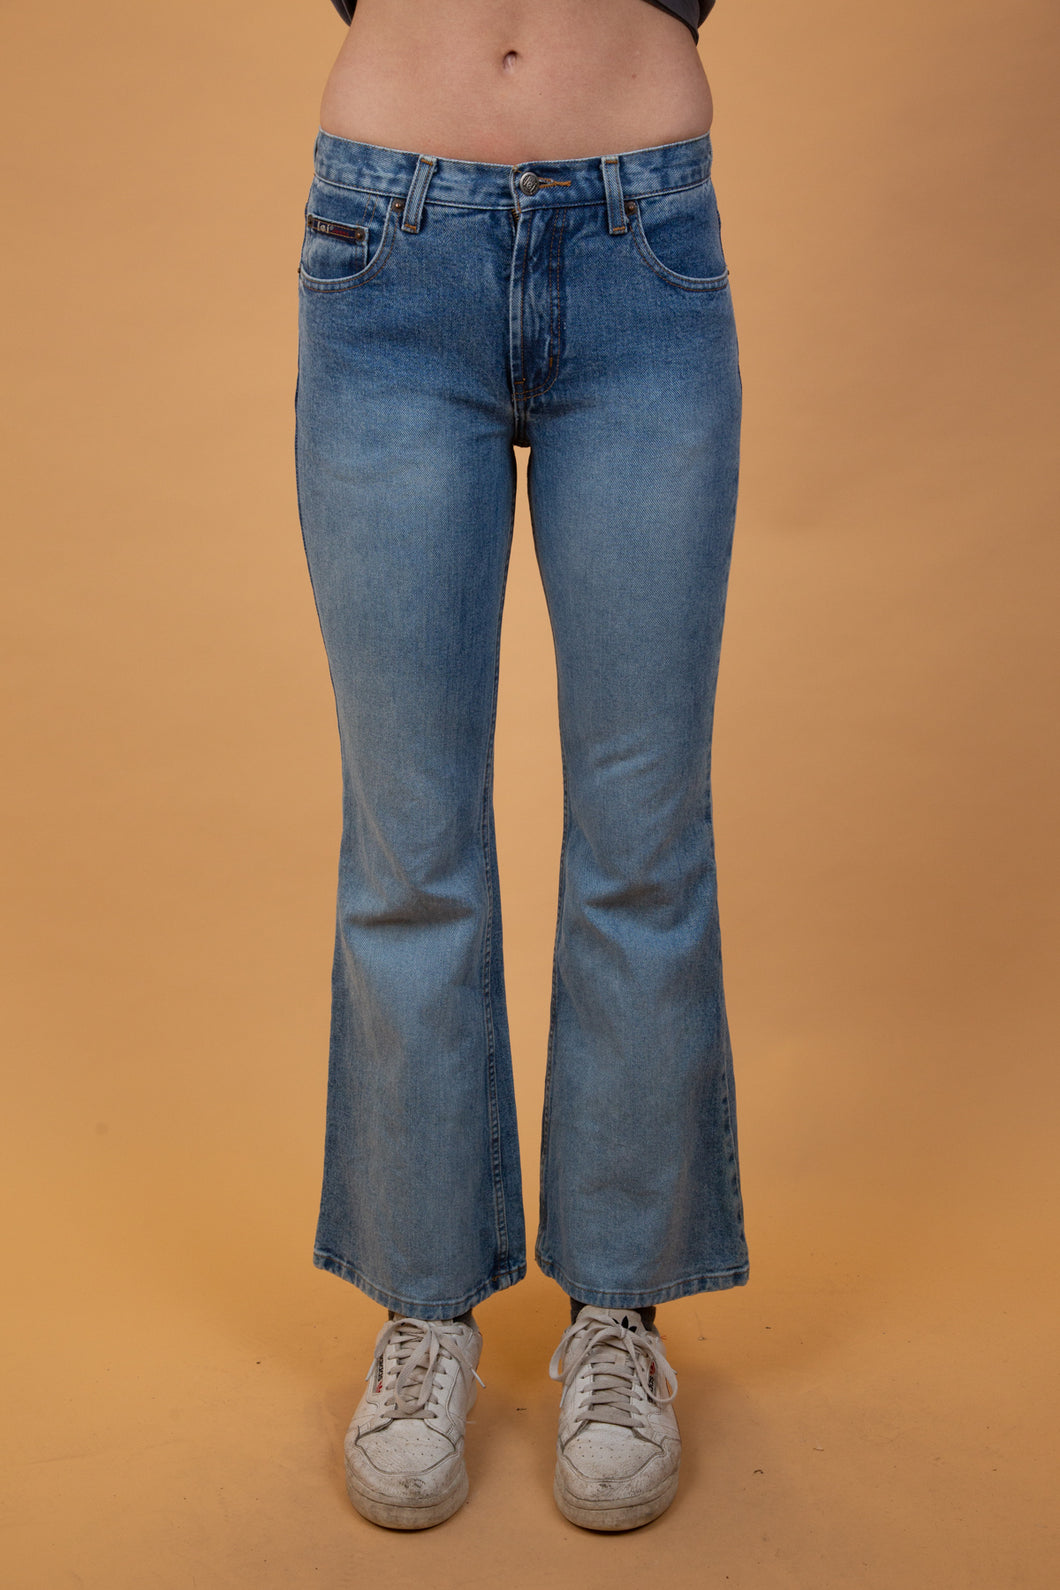 mid-wash low-rise blue jeans that flare out from the knee down.